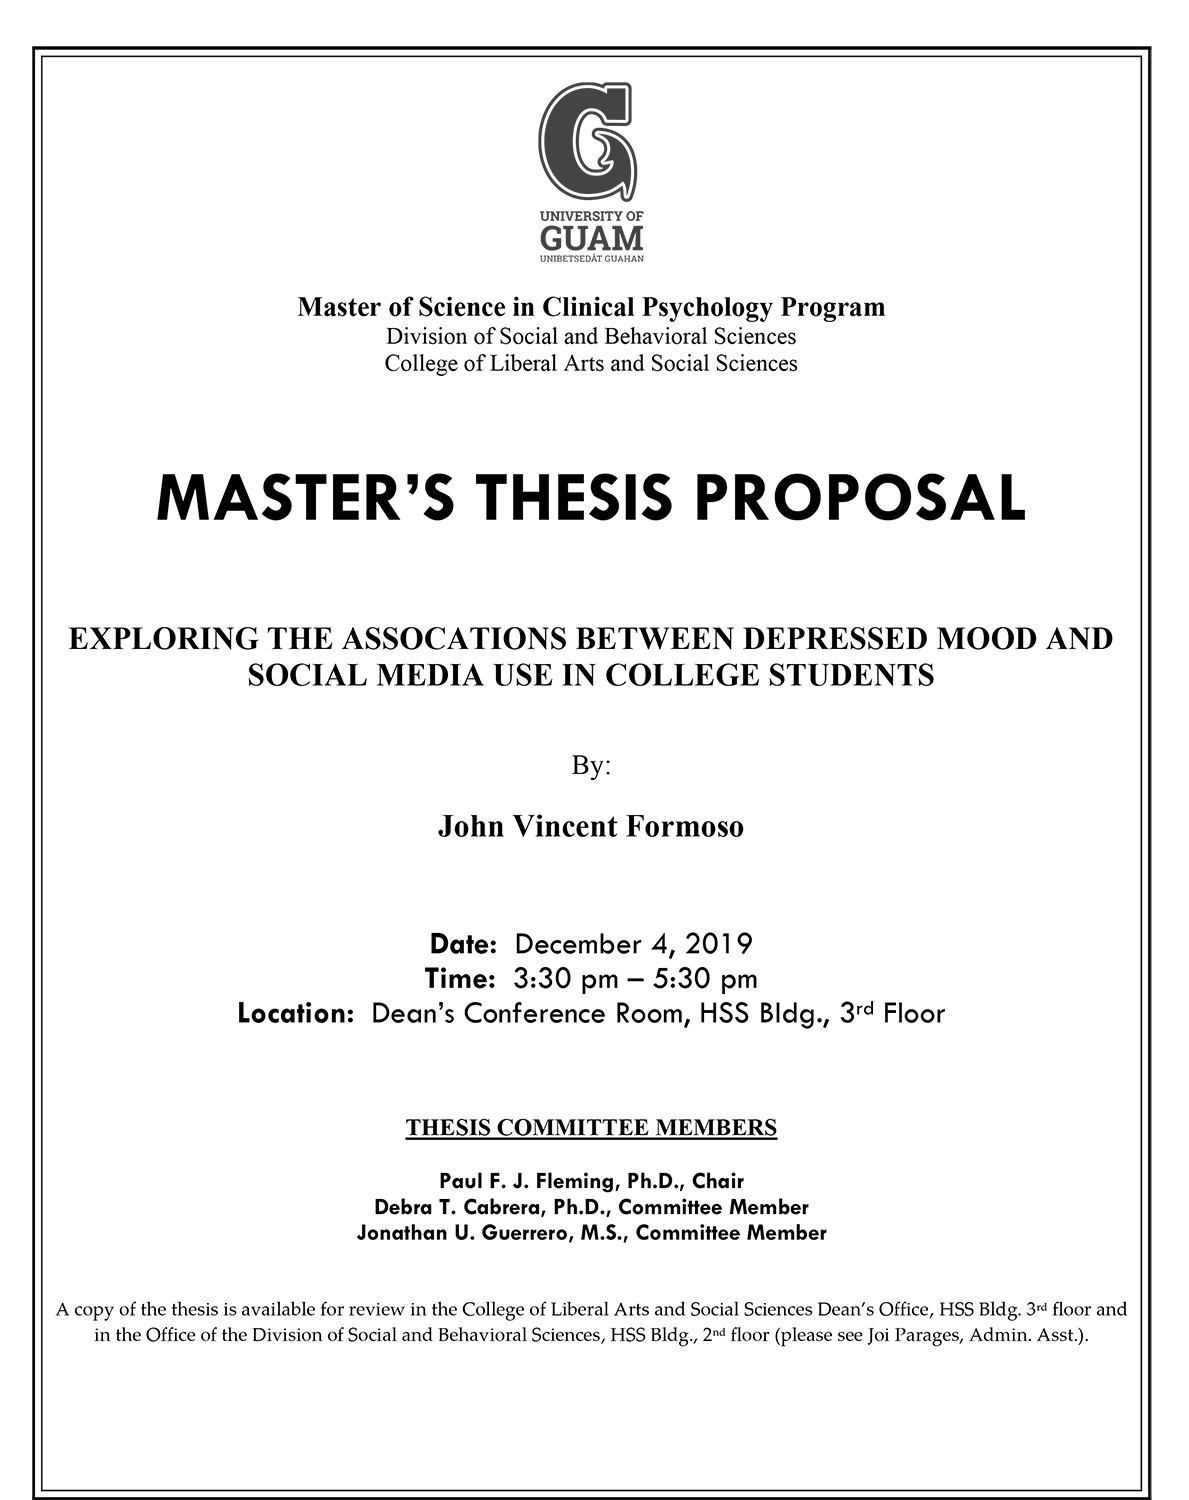 Thesis Proposal by John Formoso